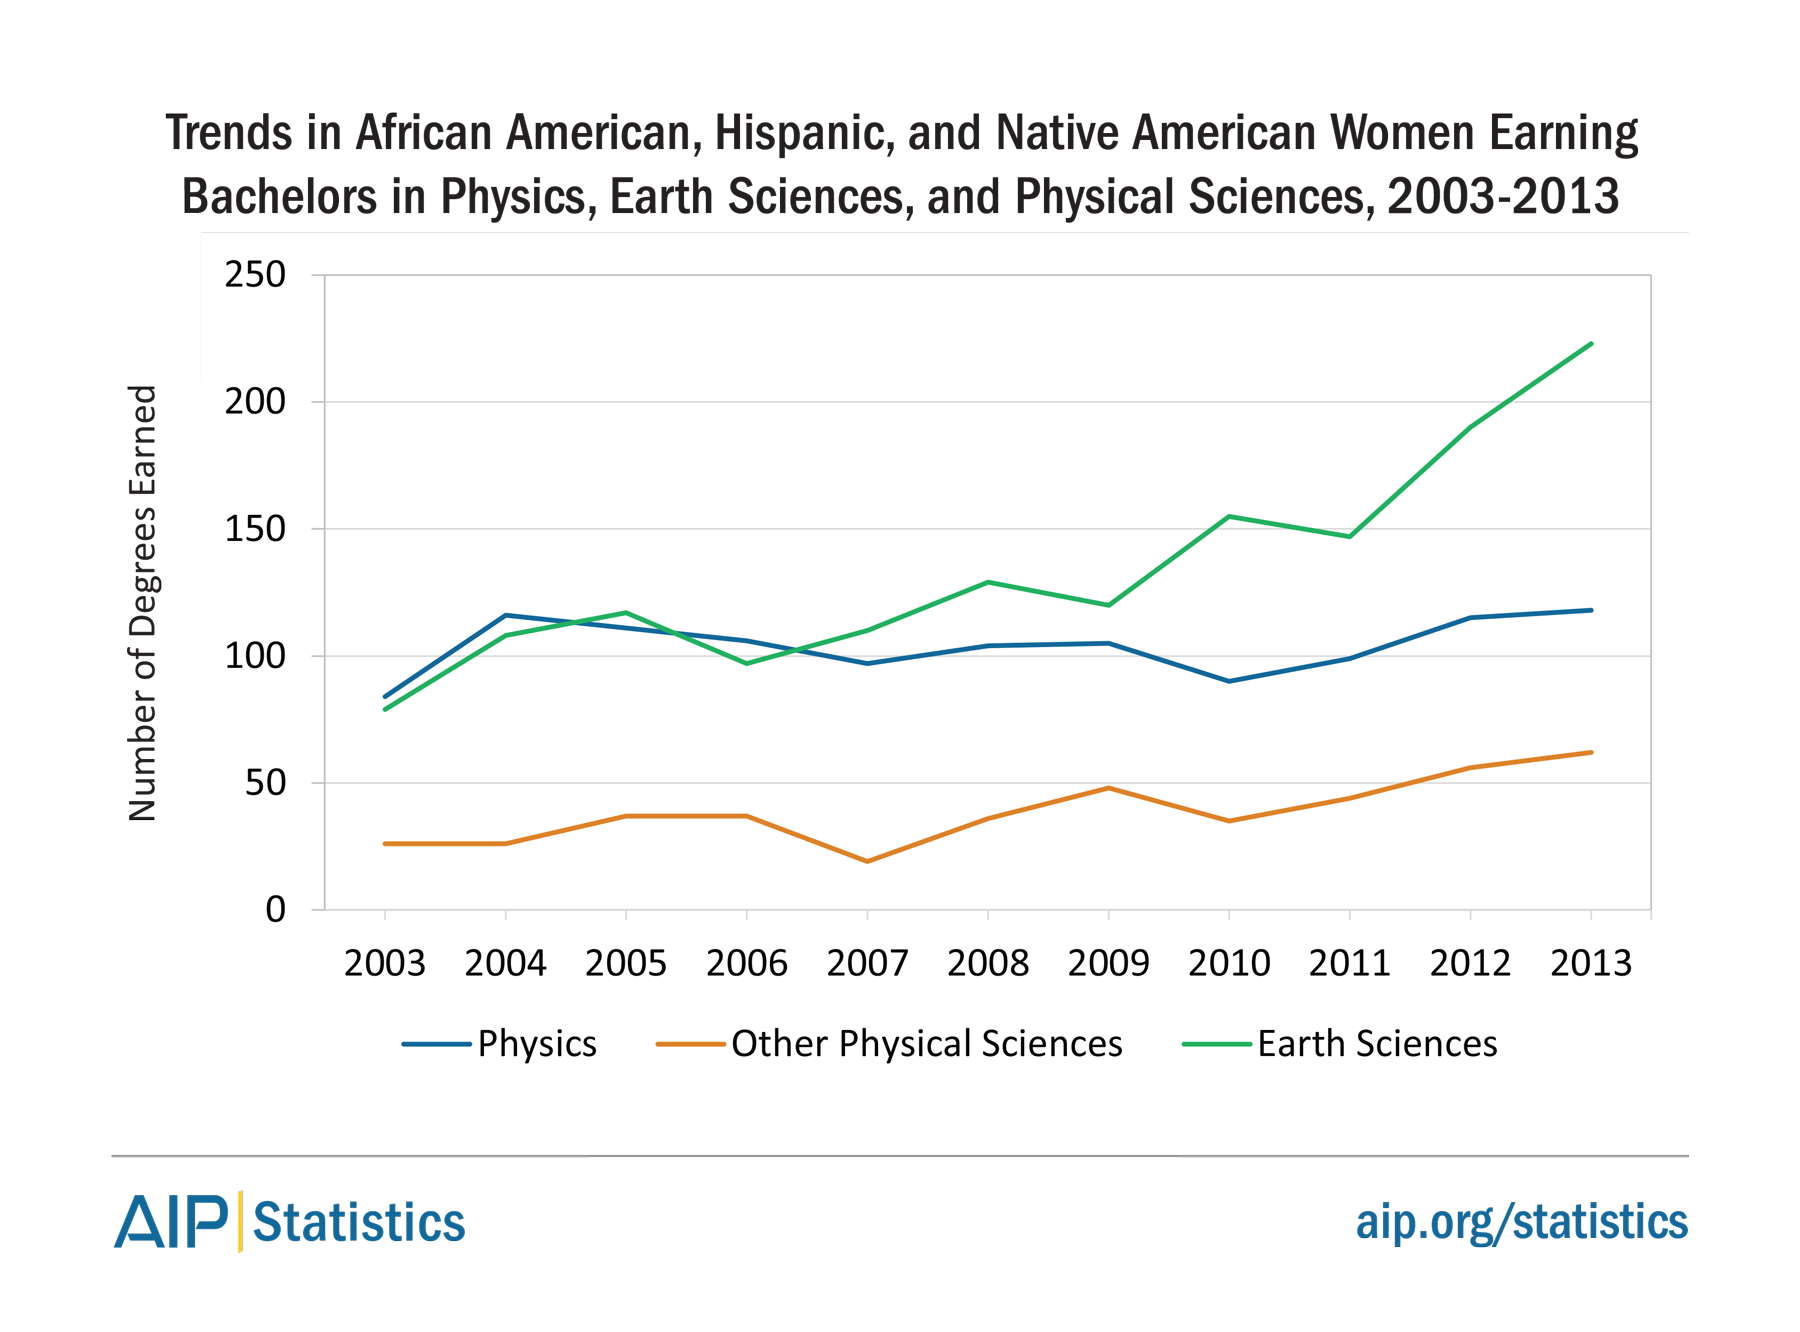 Trends in African American, Hispanic, and Native American Women Earning Bachelors in Physics, Earth Sciences, and Physical Sciences, 2003-2013